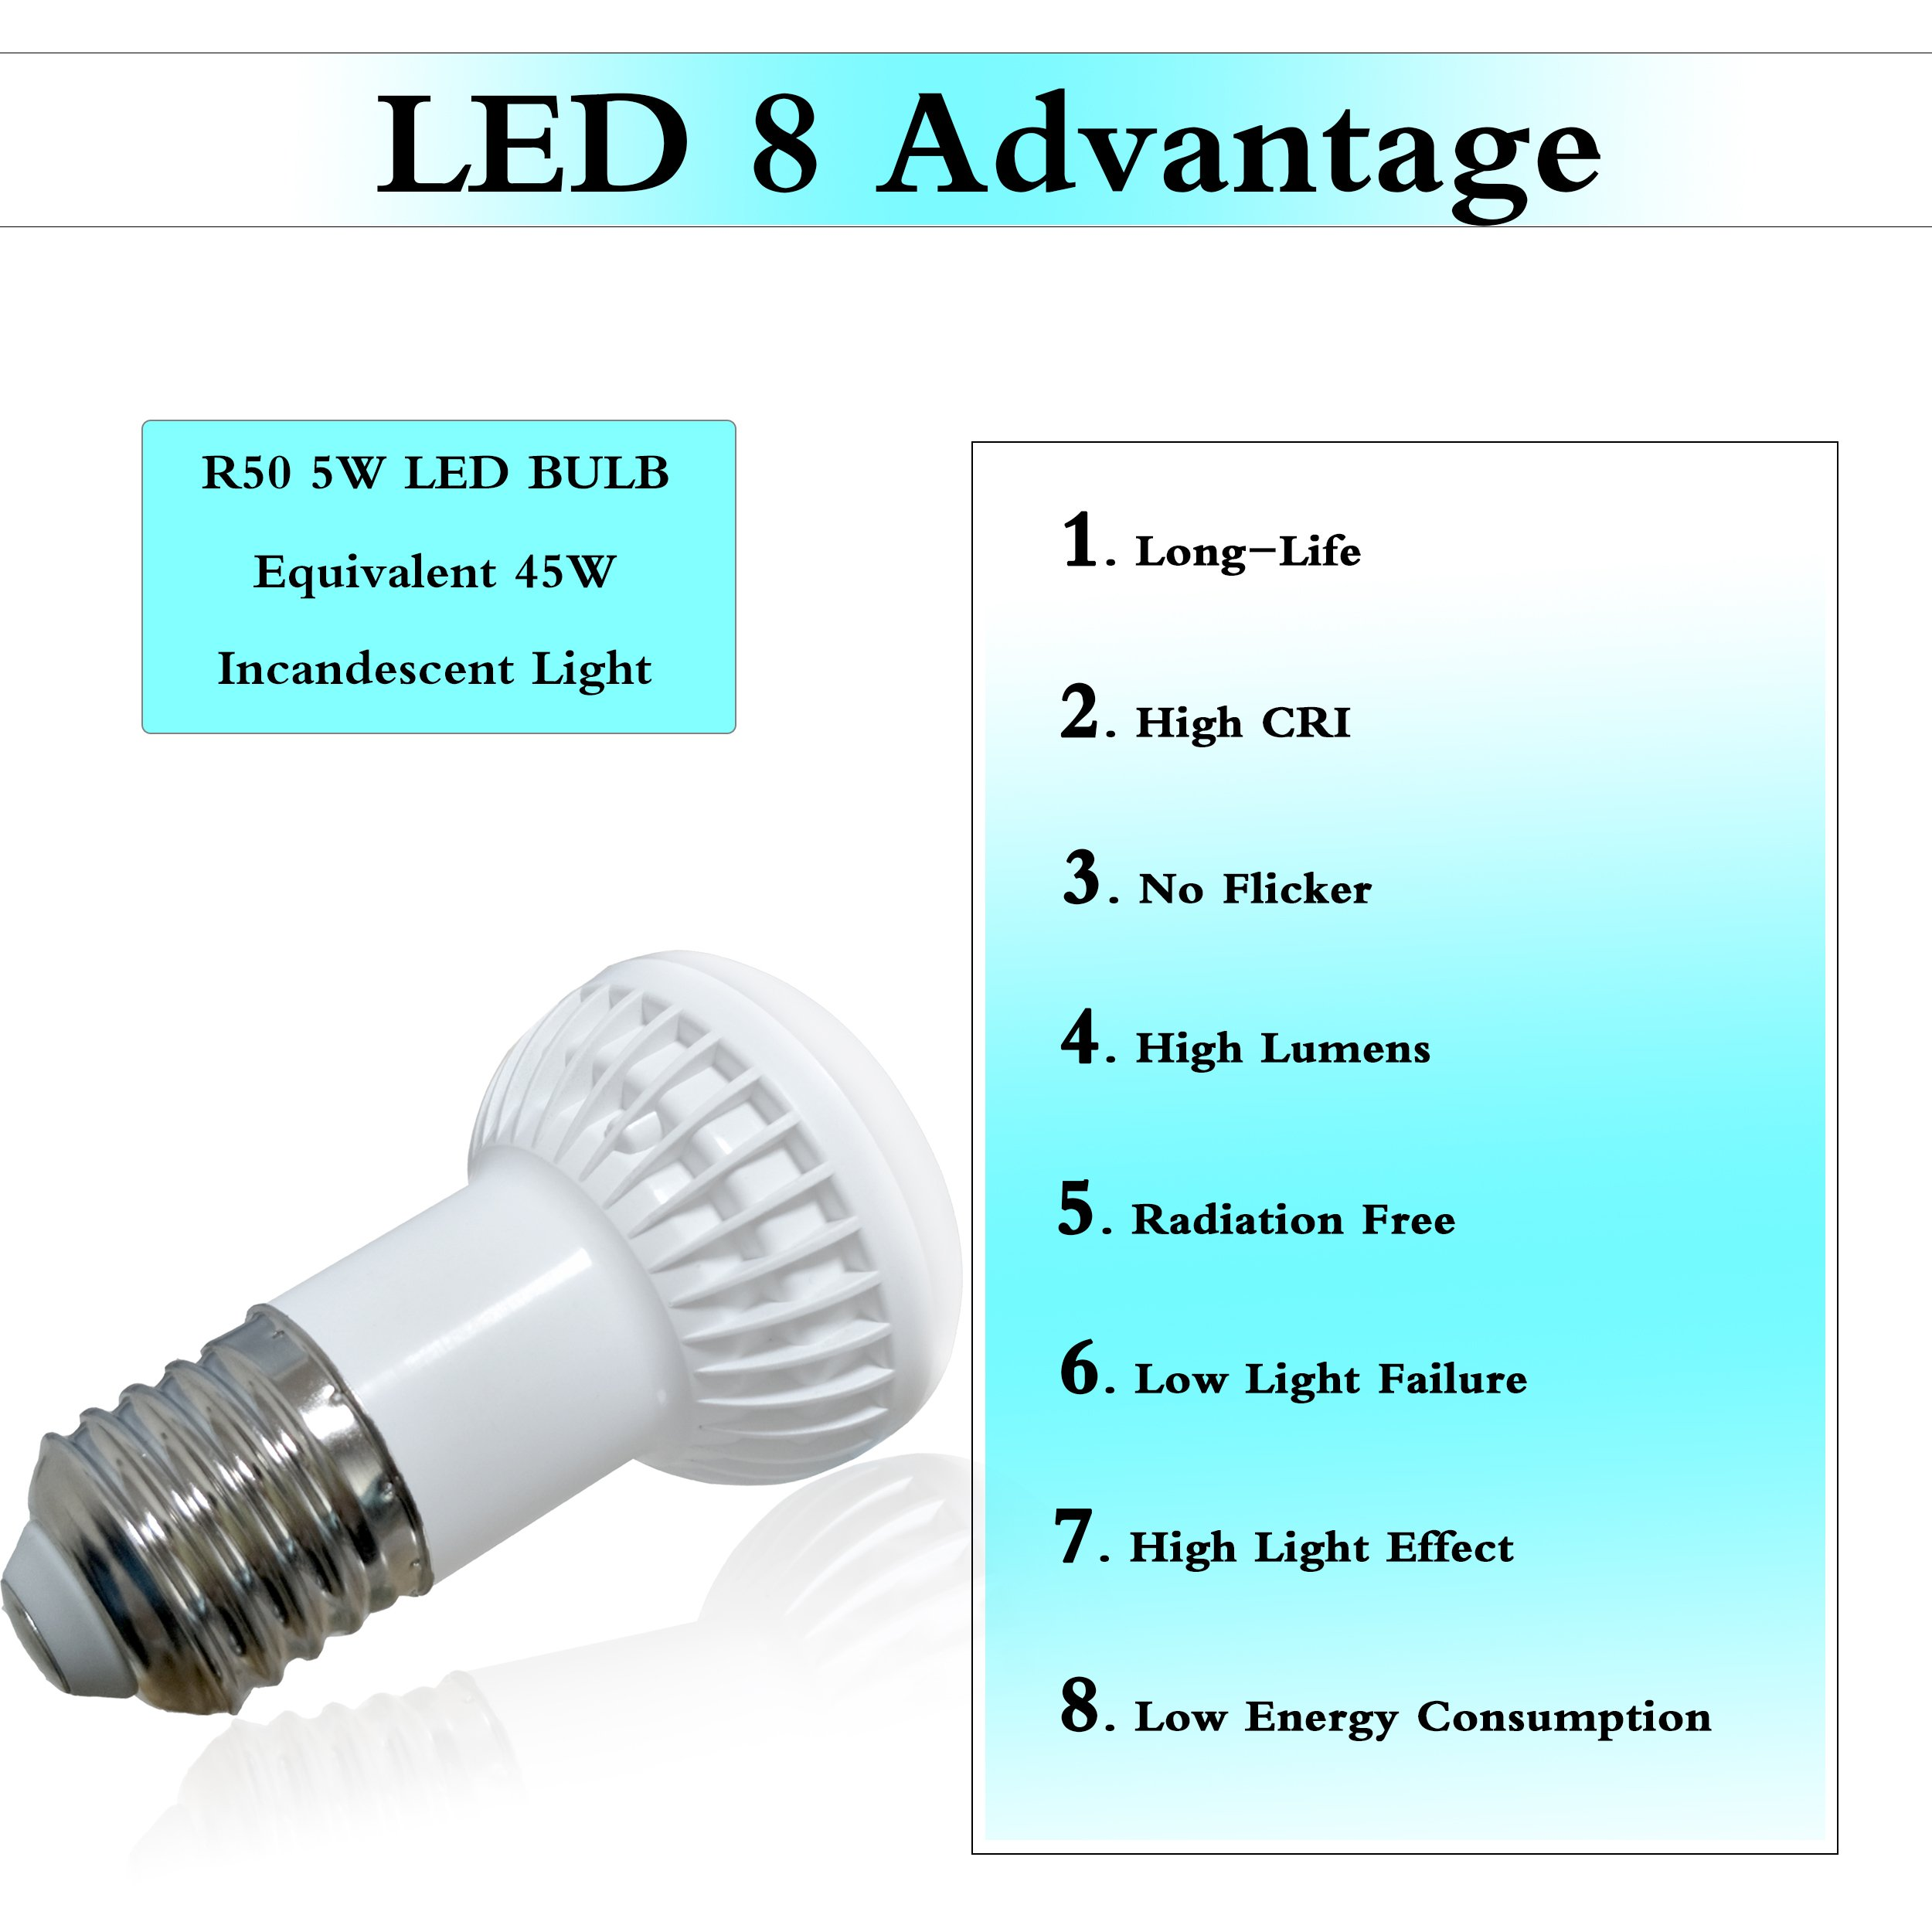 R16 LED Bulb Mini Light Bulb E26 intermiate Base 5 Watt Soft White Floodlight Dimmable Bulb 500 lumens AC-120V3000K,120 Degree,50W Incandescent Replacement,bathrooms and hallways or Other Indoor l